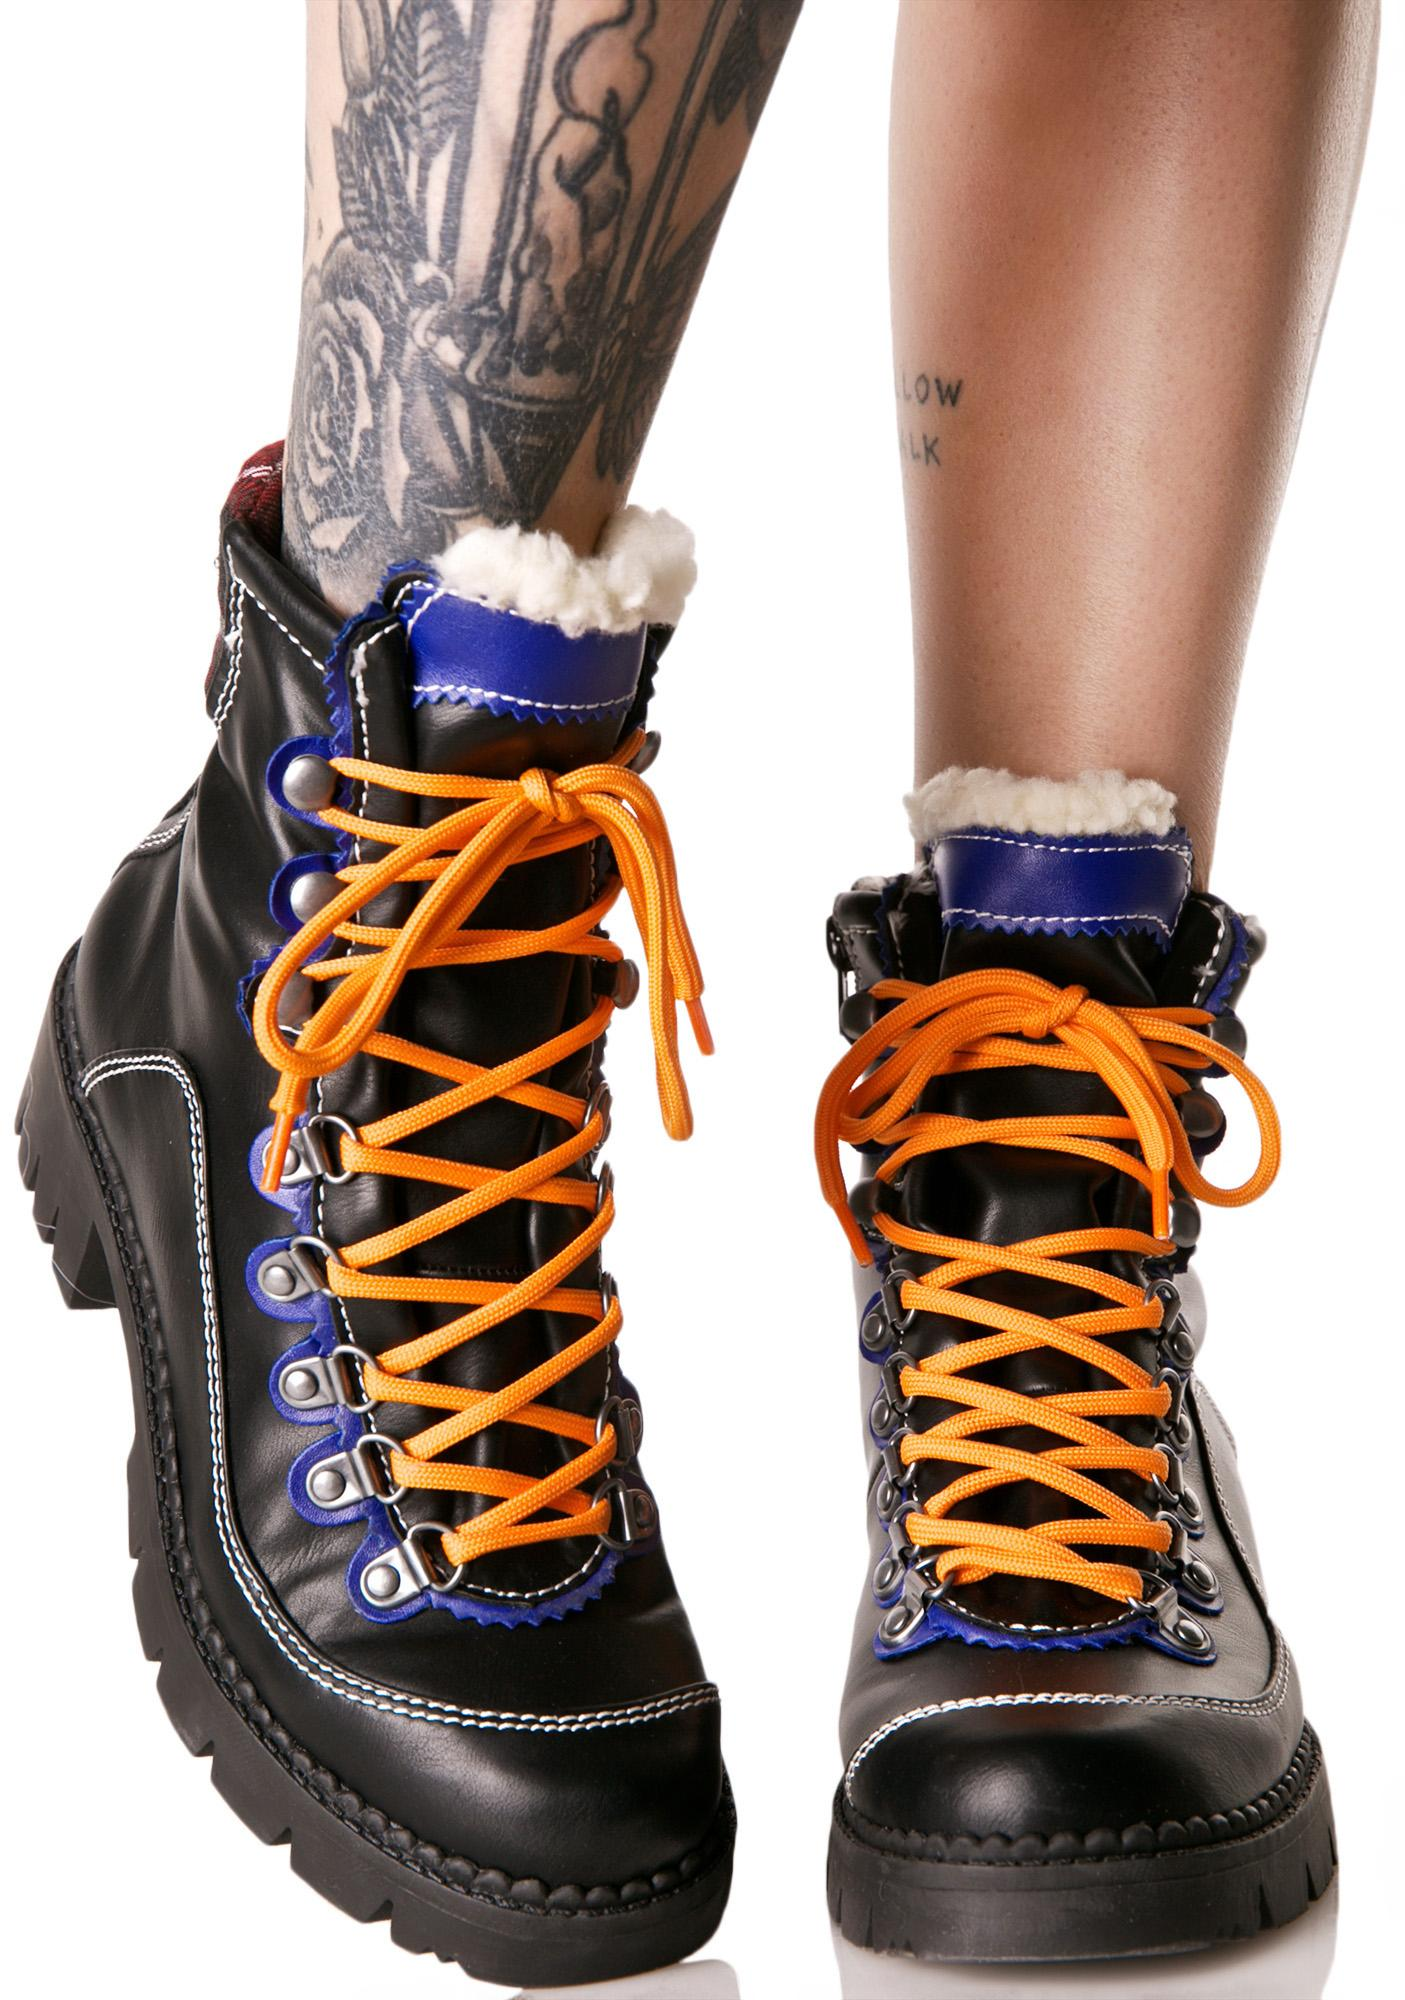 Lust For Life Alps Lace-Up Hiking Boots